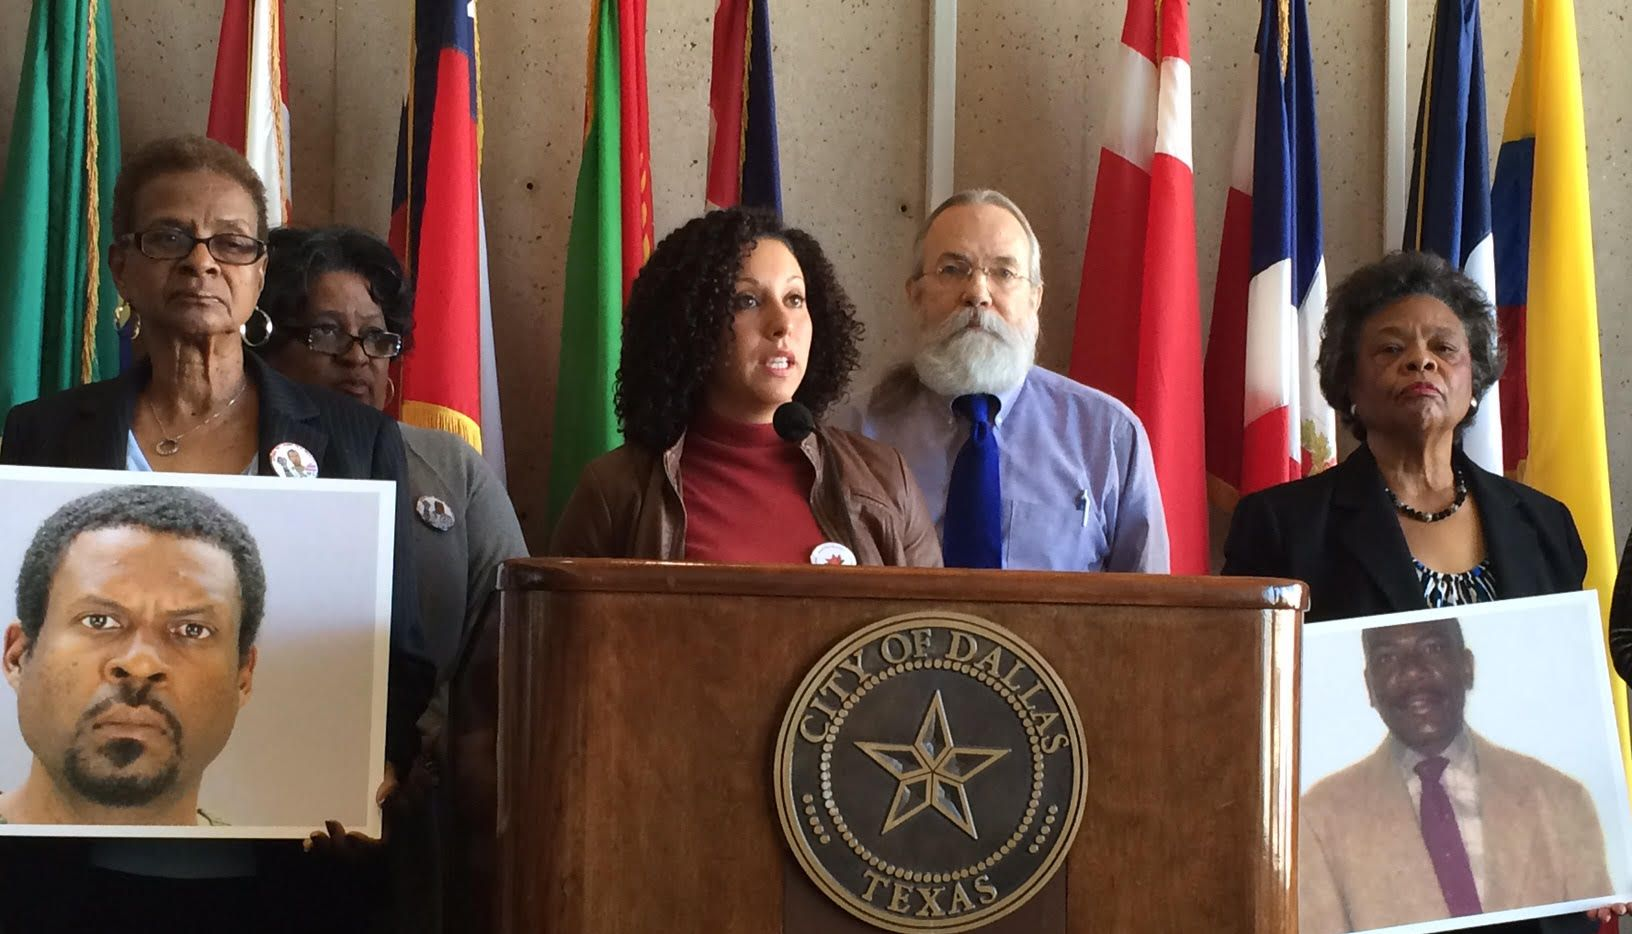 Rochelle Bilal  of the National Black Police Association and Ron Pinkston (center right) of the Dallas Police Association spoke out against Chief David Brown.